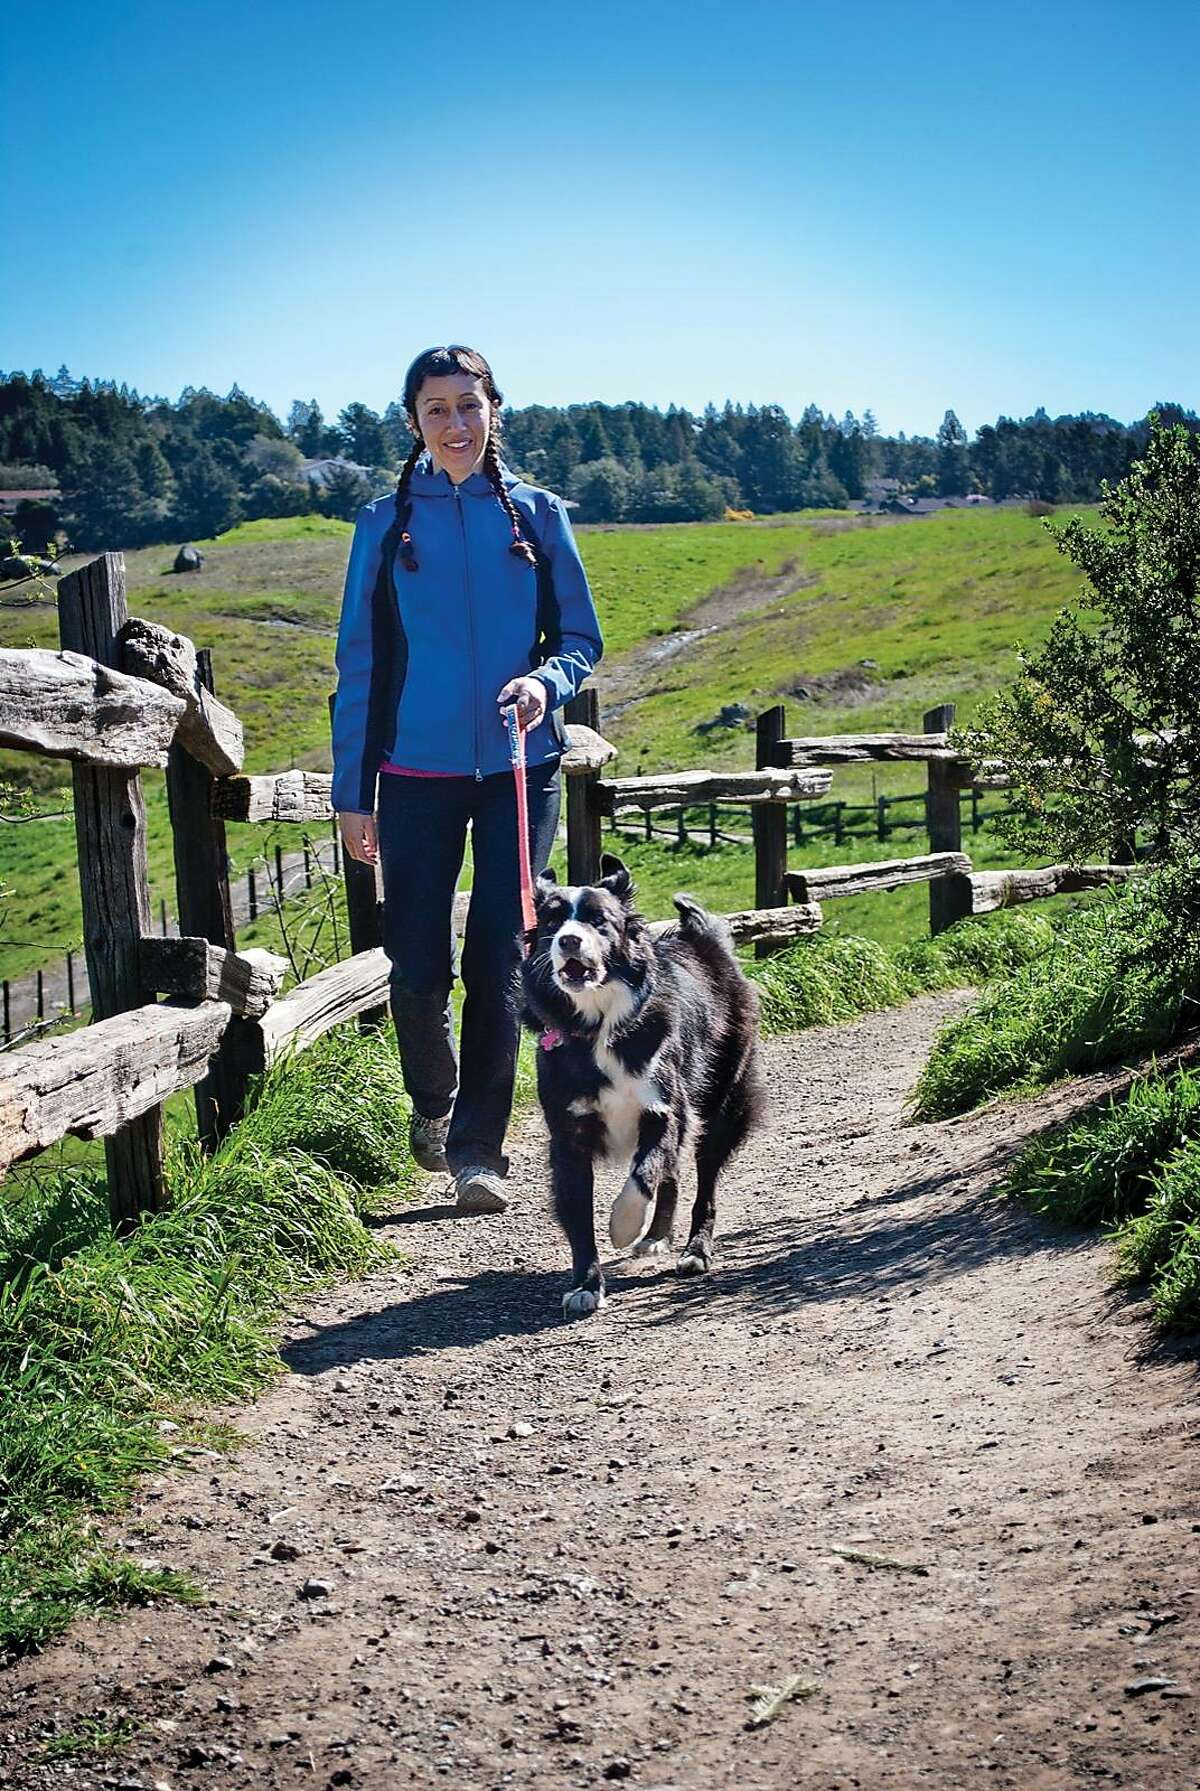 Leashed dogs are permitted in virtually all of the 65 parks in the East Bay Regional Park District and throughout the park roads on land managed by the Marin Municipal Water District, but sharply restricted in most other parks and open space throughout the Bay Area